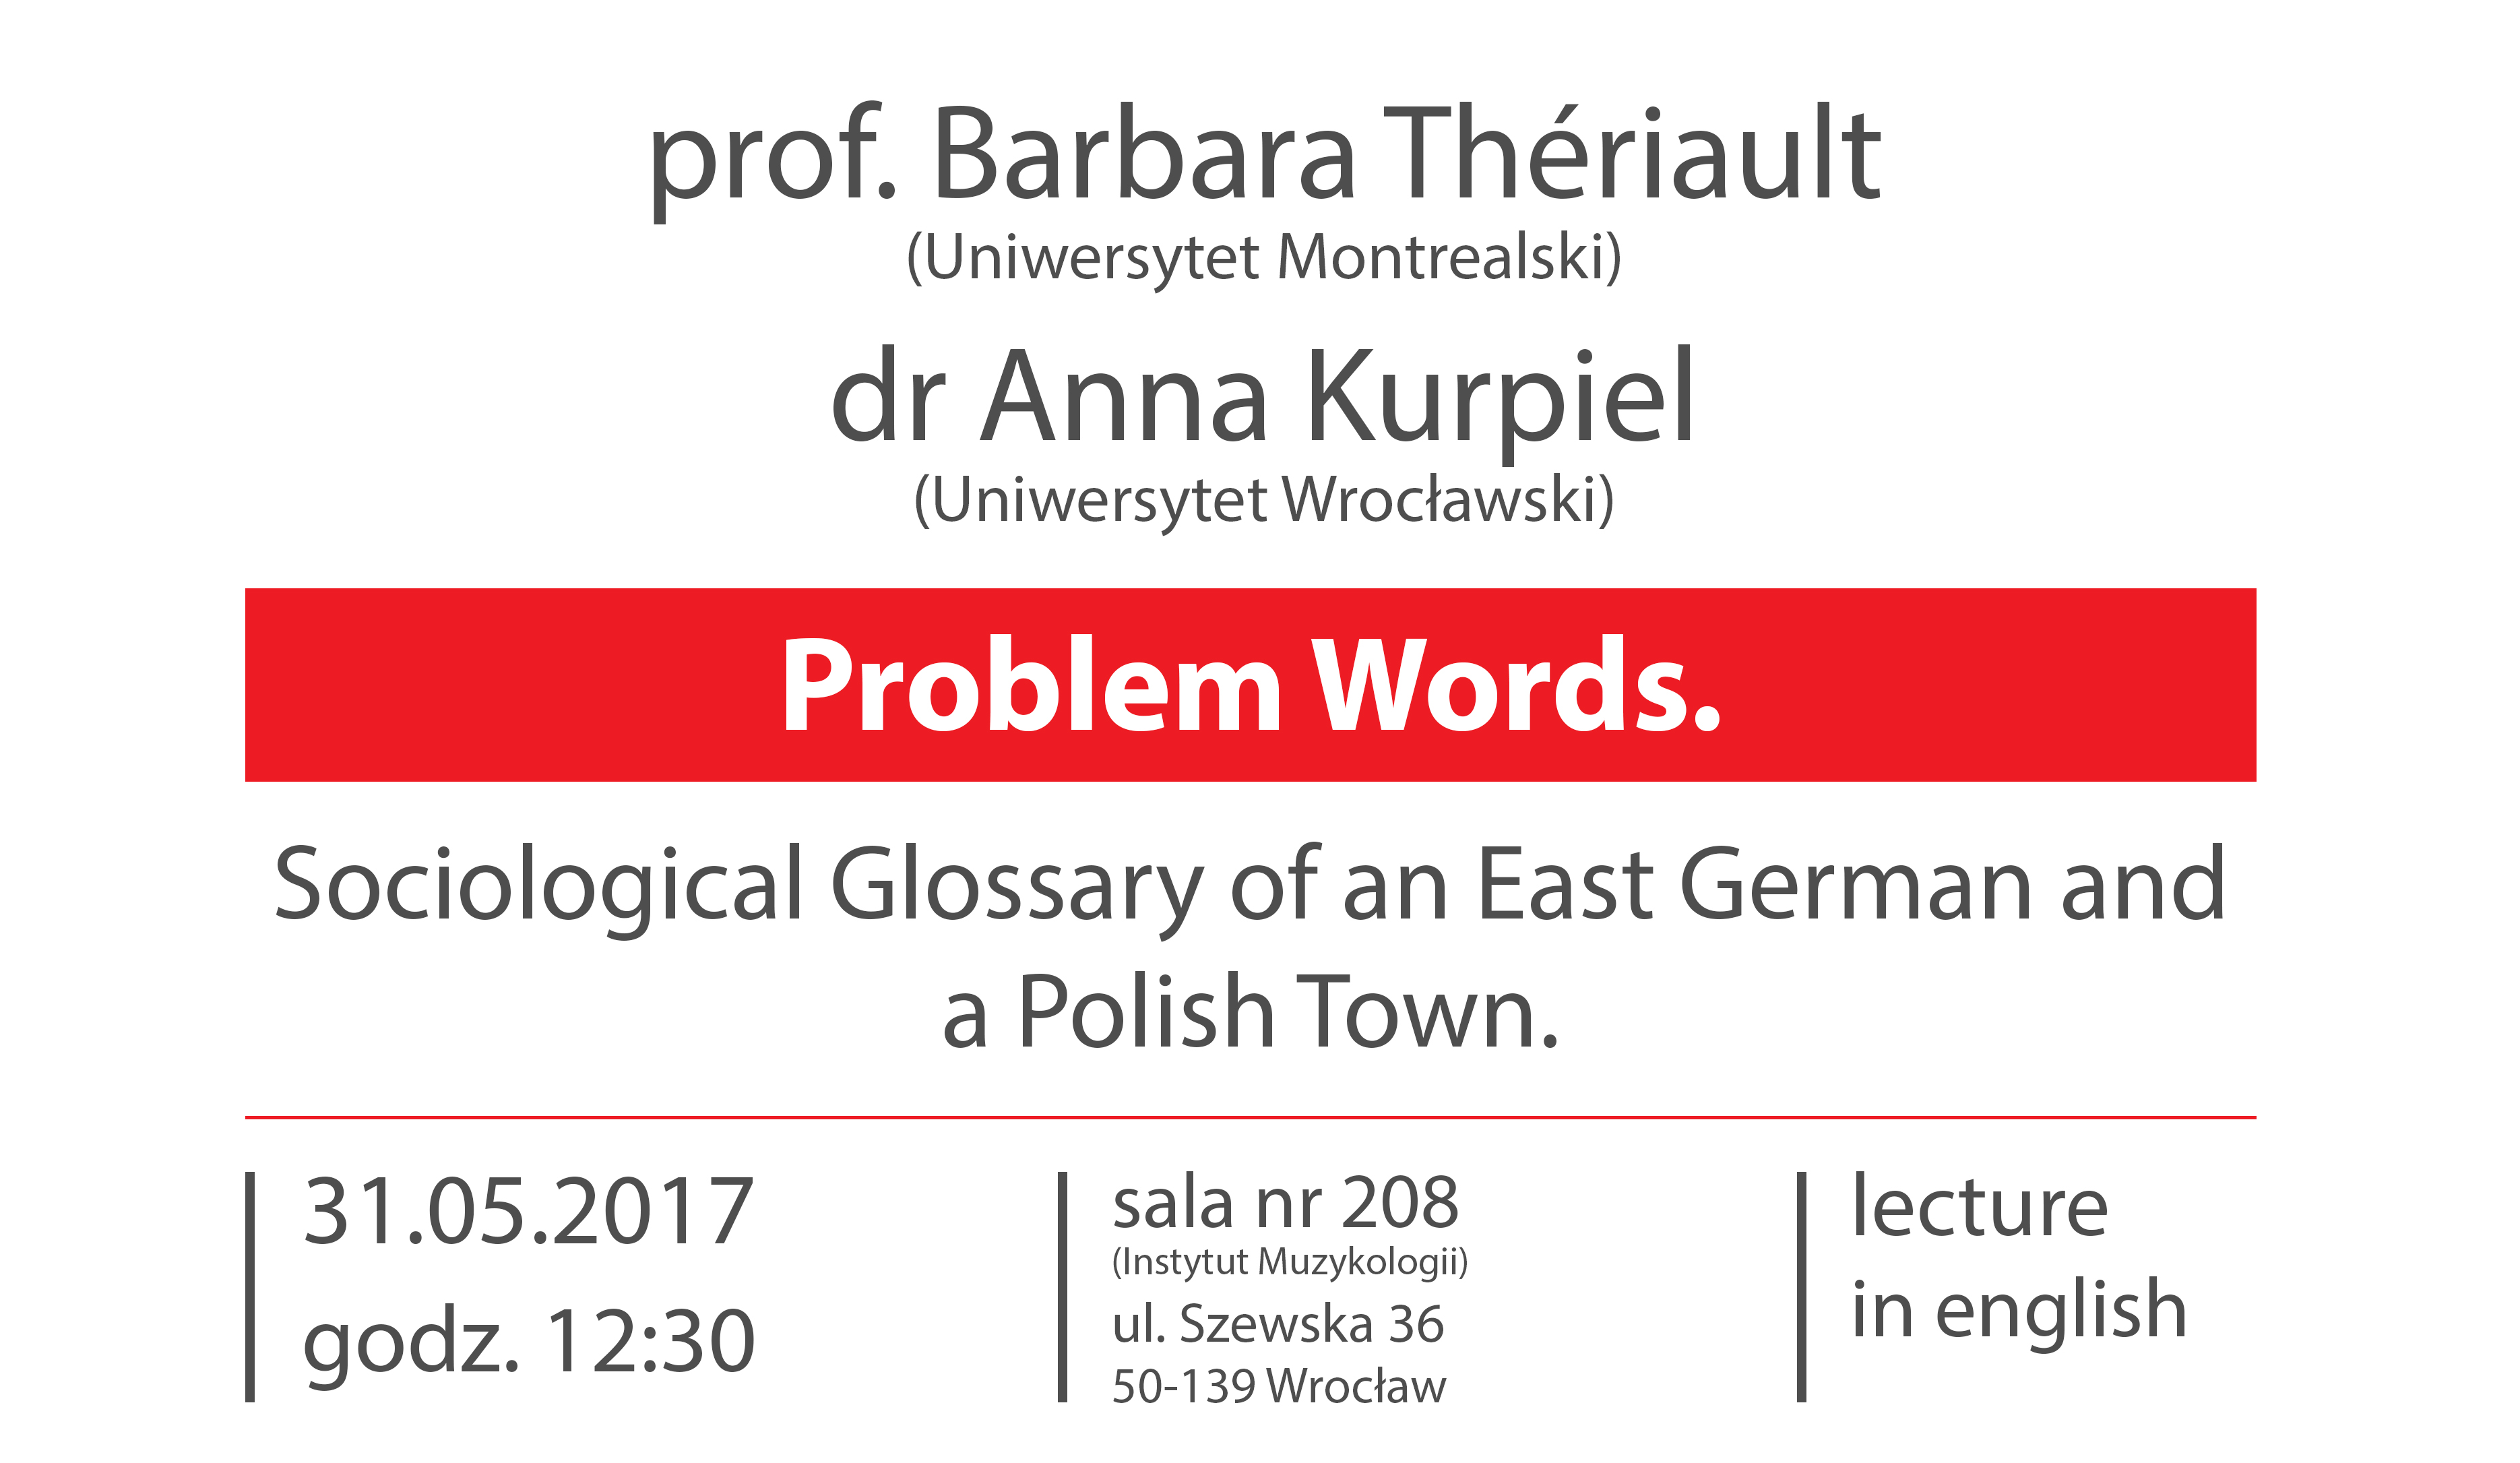 "Spotkanie z prof. Barbarą Thériault oraz dr Anną Kurpiel ""Problem Words. Sociological Glossary of an East German and a Polish Town"""